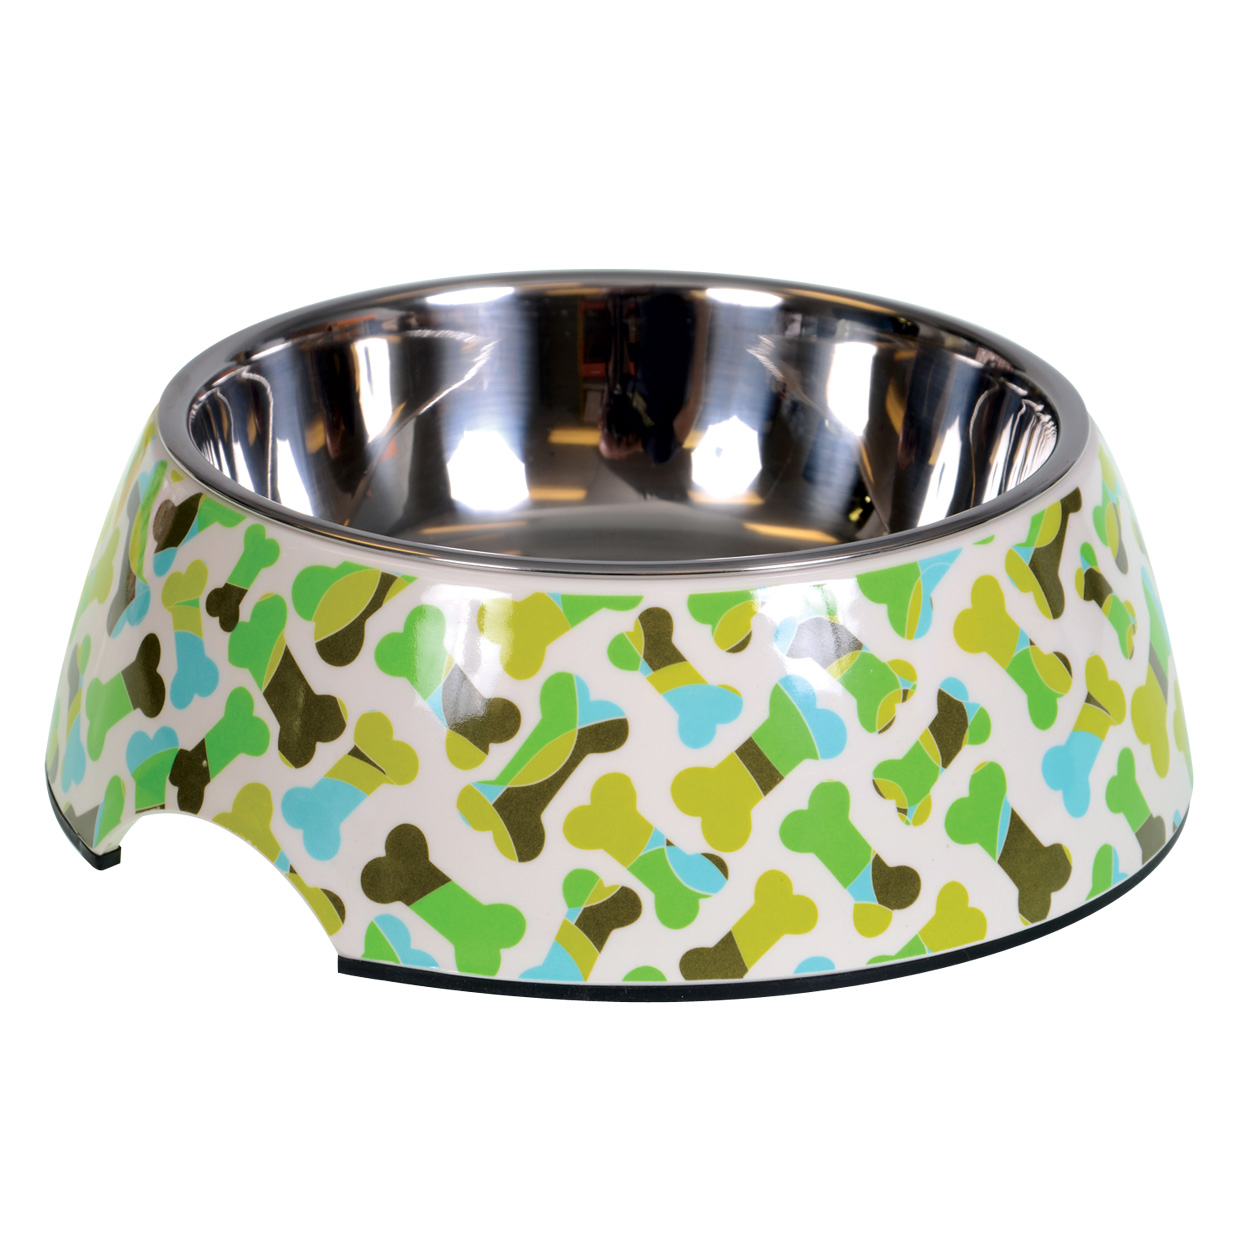 "Animal Treasures Designer Bowl - Green Bones - Large - 7"" dia. 30734"